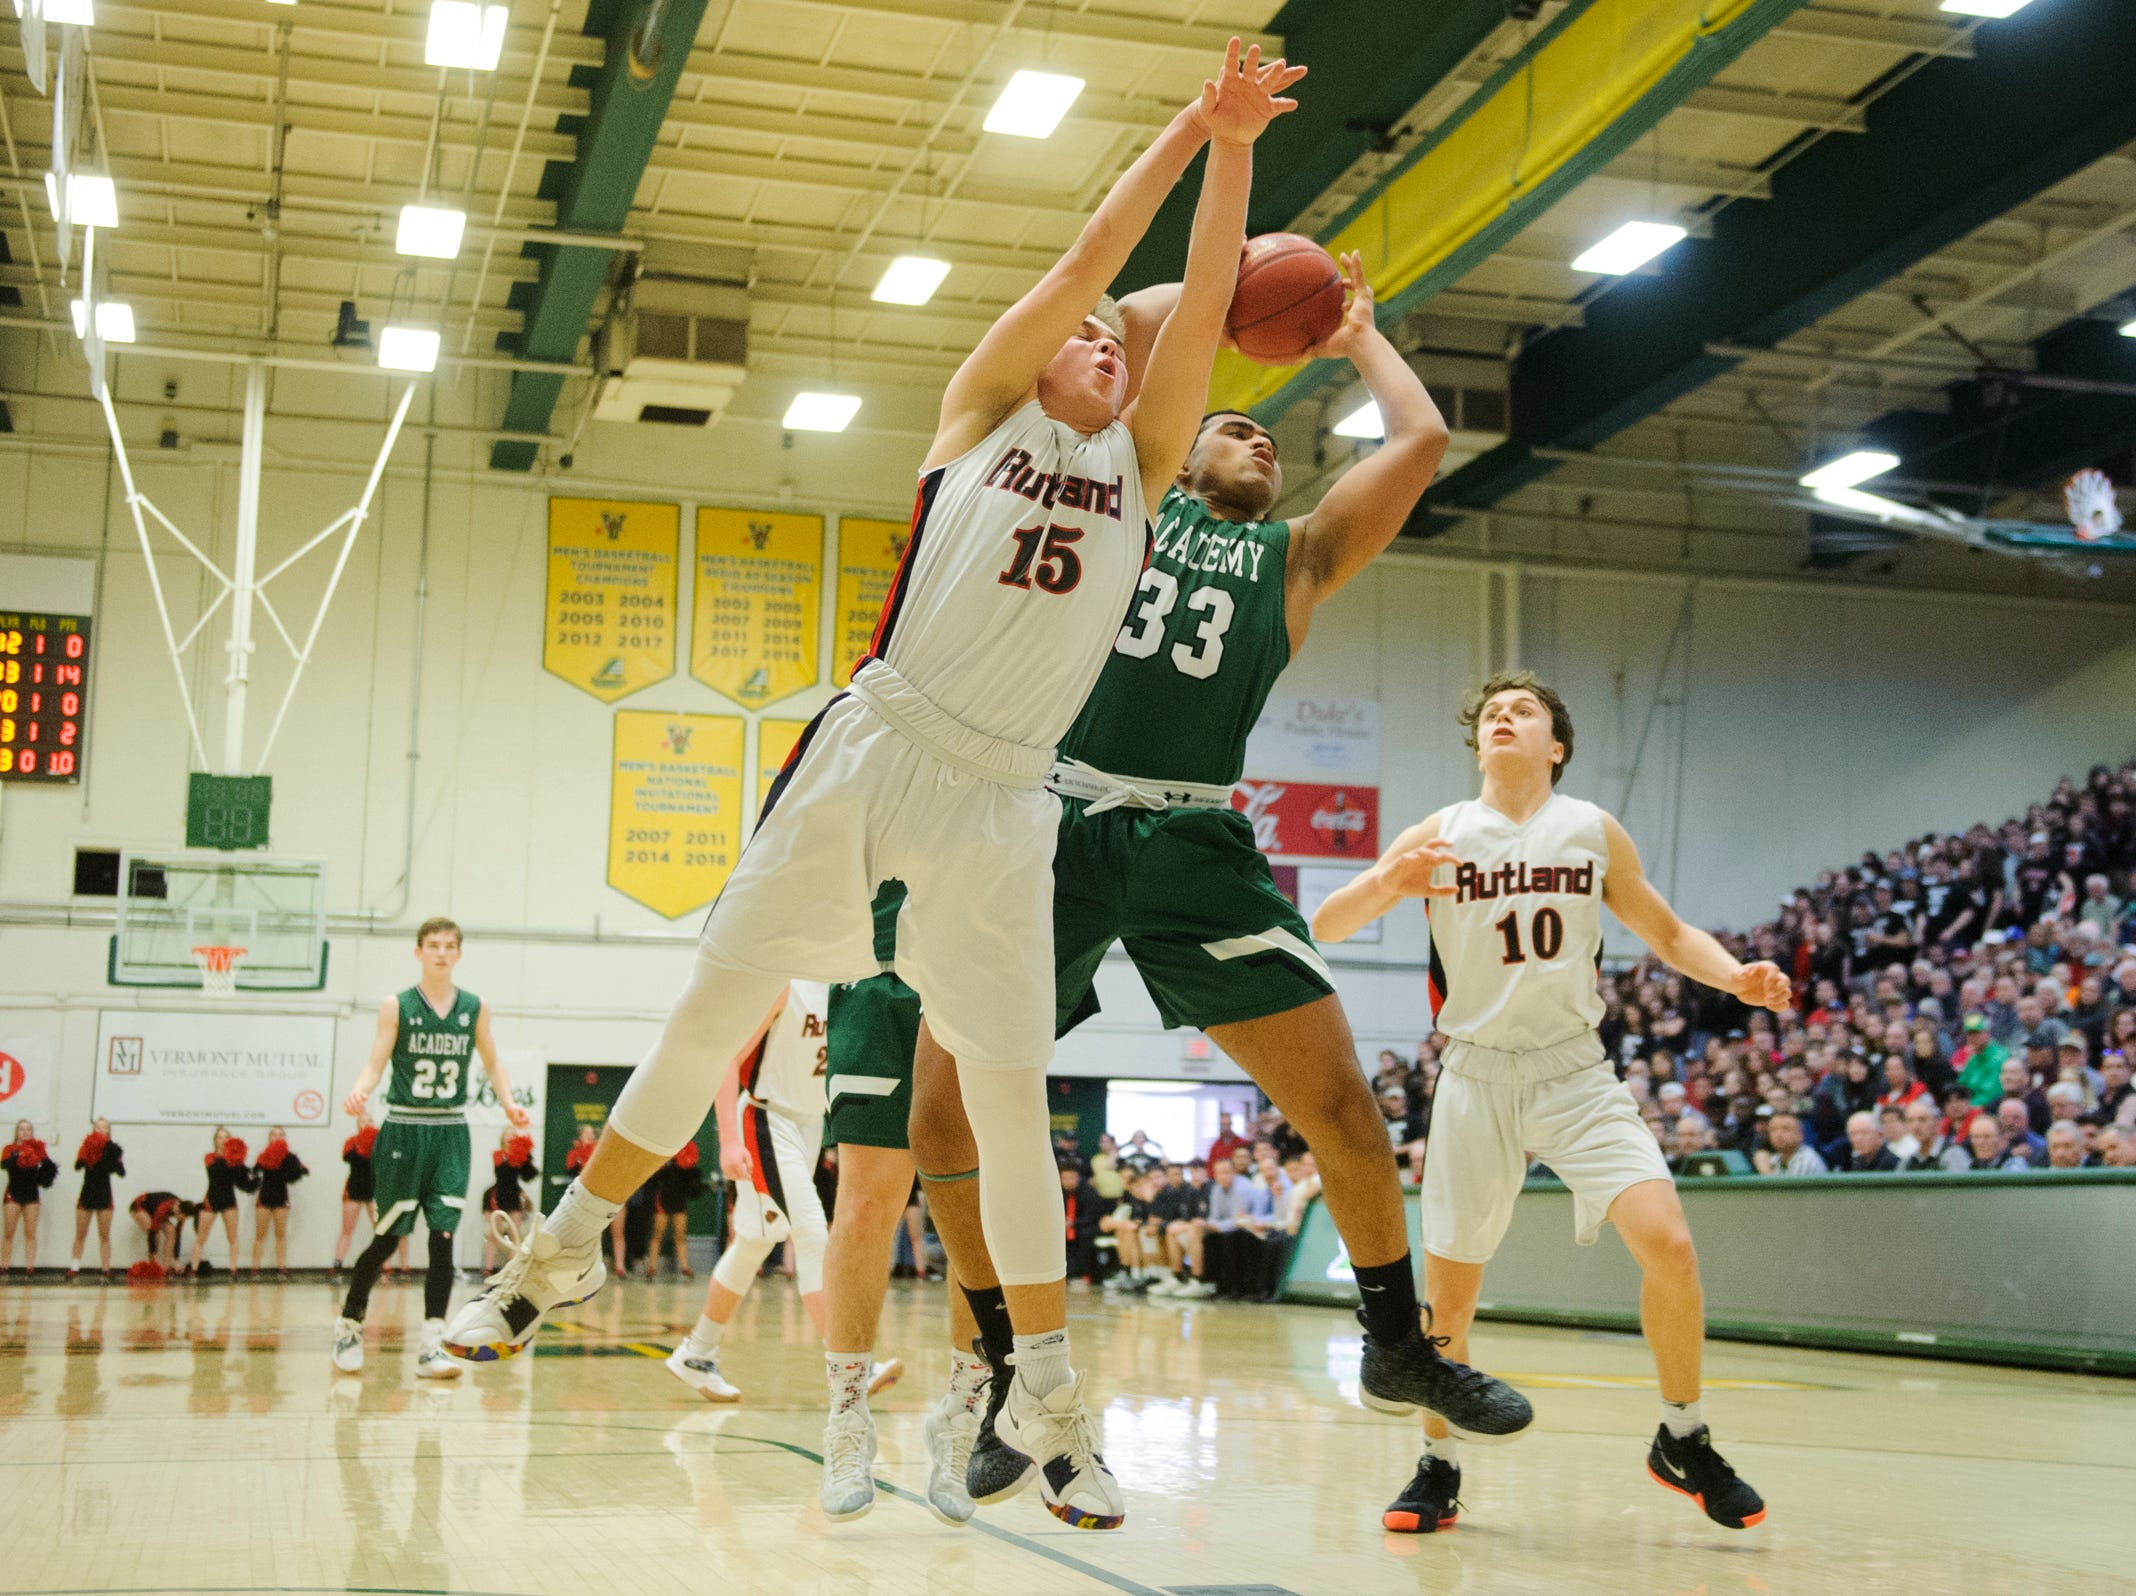 St. Johnsbury's Asom Hayman-Jones (34) and Rutland's Jacob Lorman (24 battle for the rebound during the DI boys basketball championship game between the St. Johnsbury Hilltoppers and the Rutland Raiders at Patrick Gym on Sunday afternoon March 17, 2019 in Burlington, Vermont.